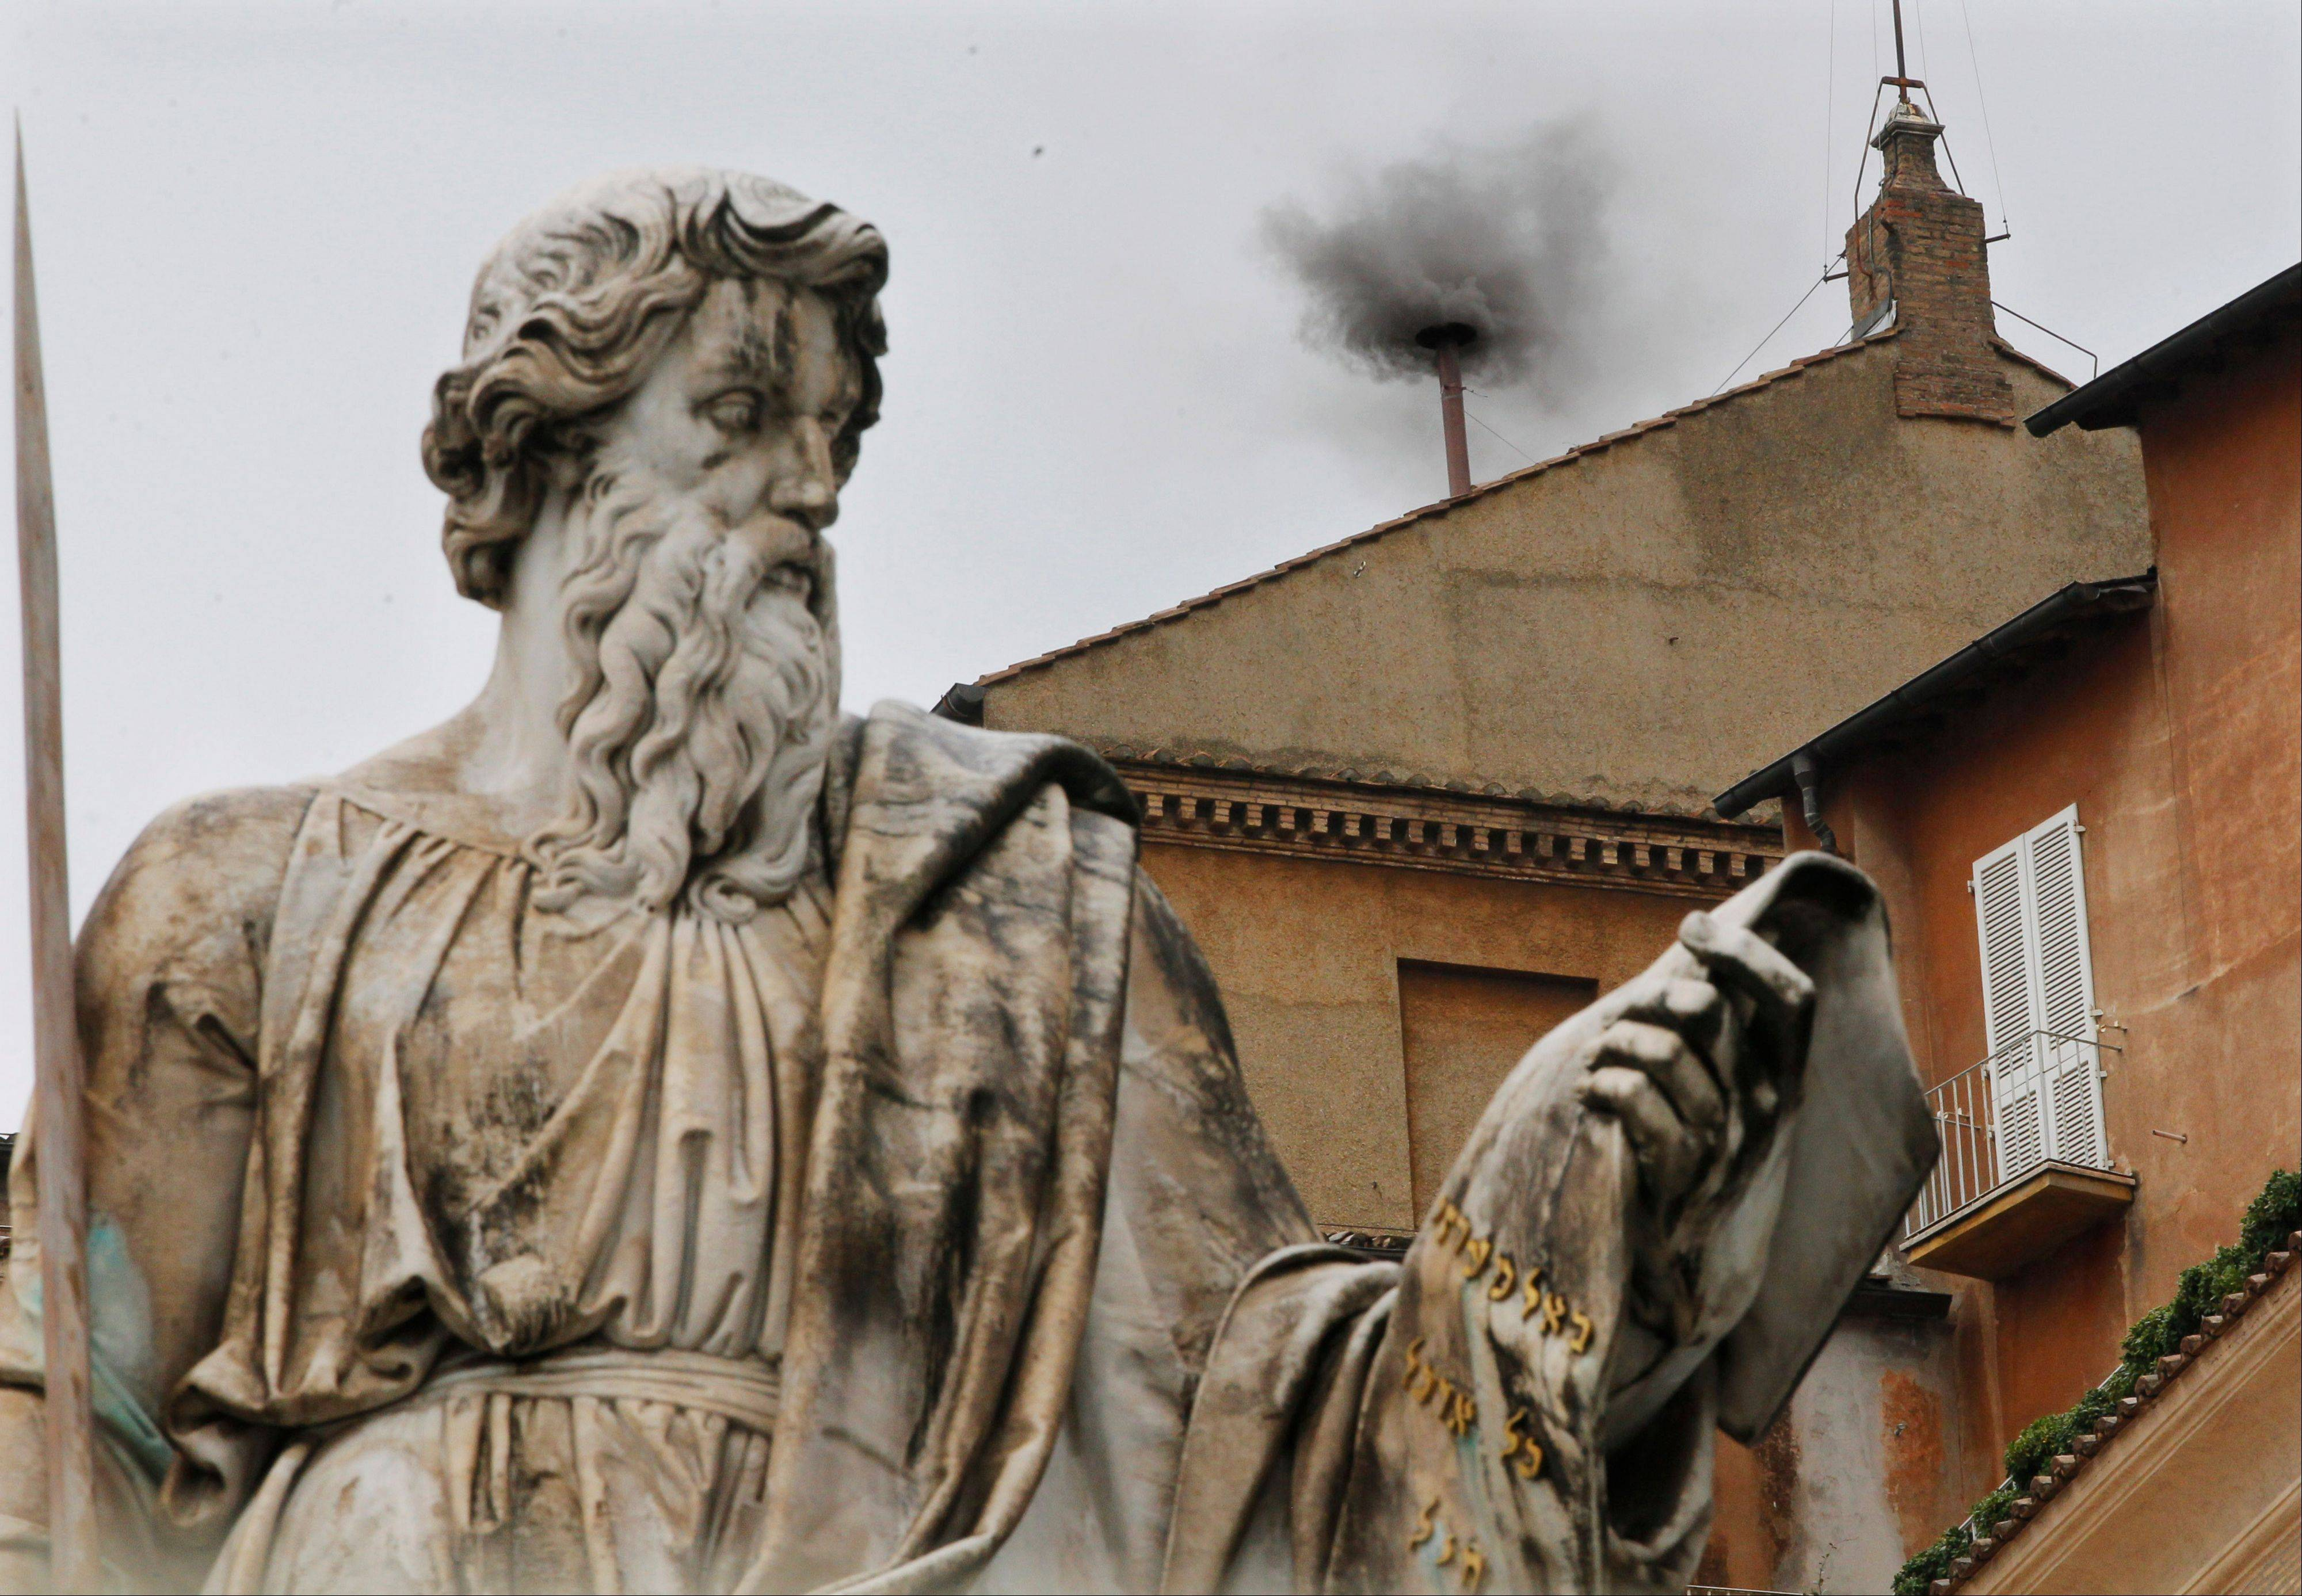 Black smoke emerges from the chimney on the Sistine Chapel as cardinals voted on the second day of the conclave to elect a pope in St. Peter's Square at the Vatican, Wednesday.